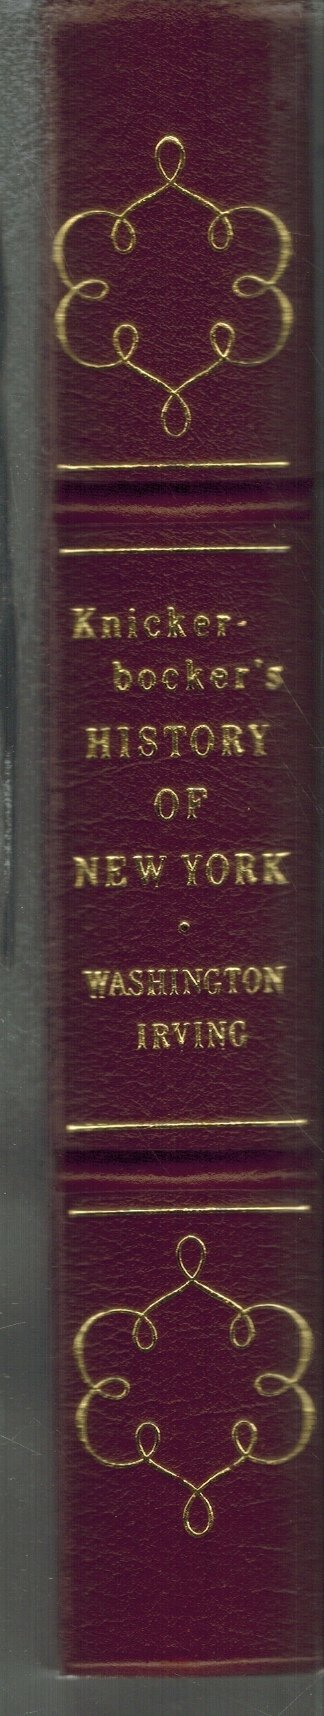 KNICKER-BOCKER'S HISTORY OF NEW YORK EASTON PRESS  by Irving, Washington